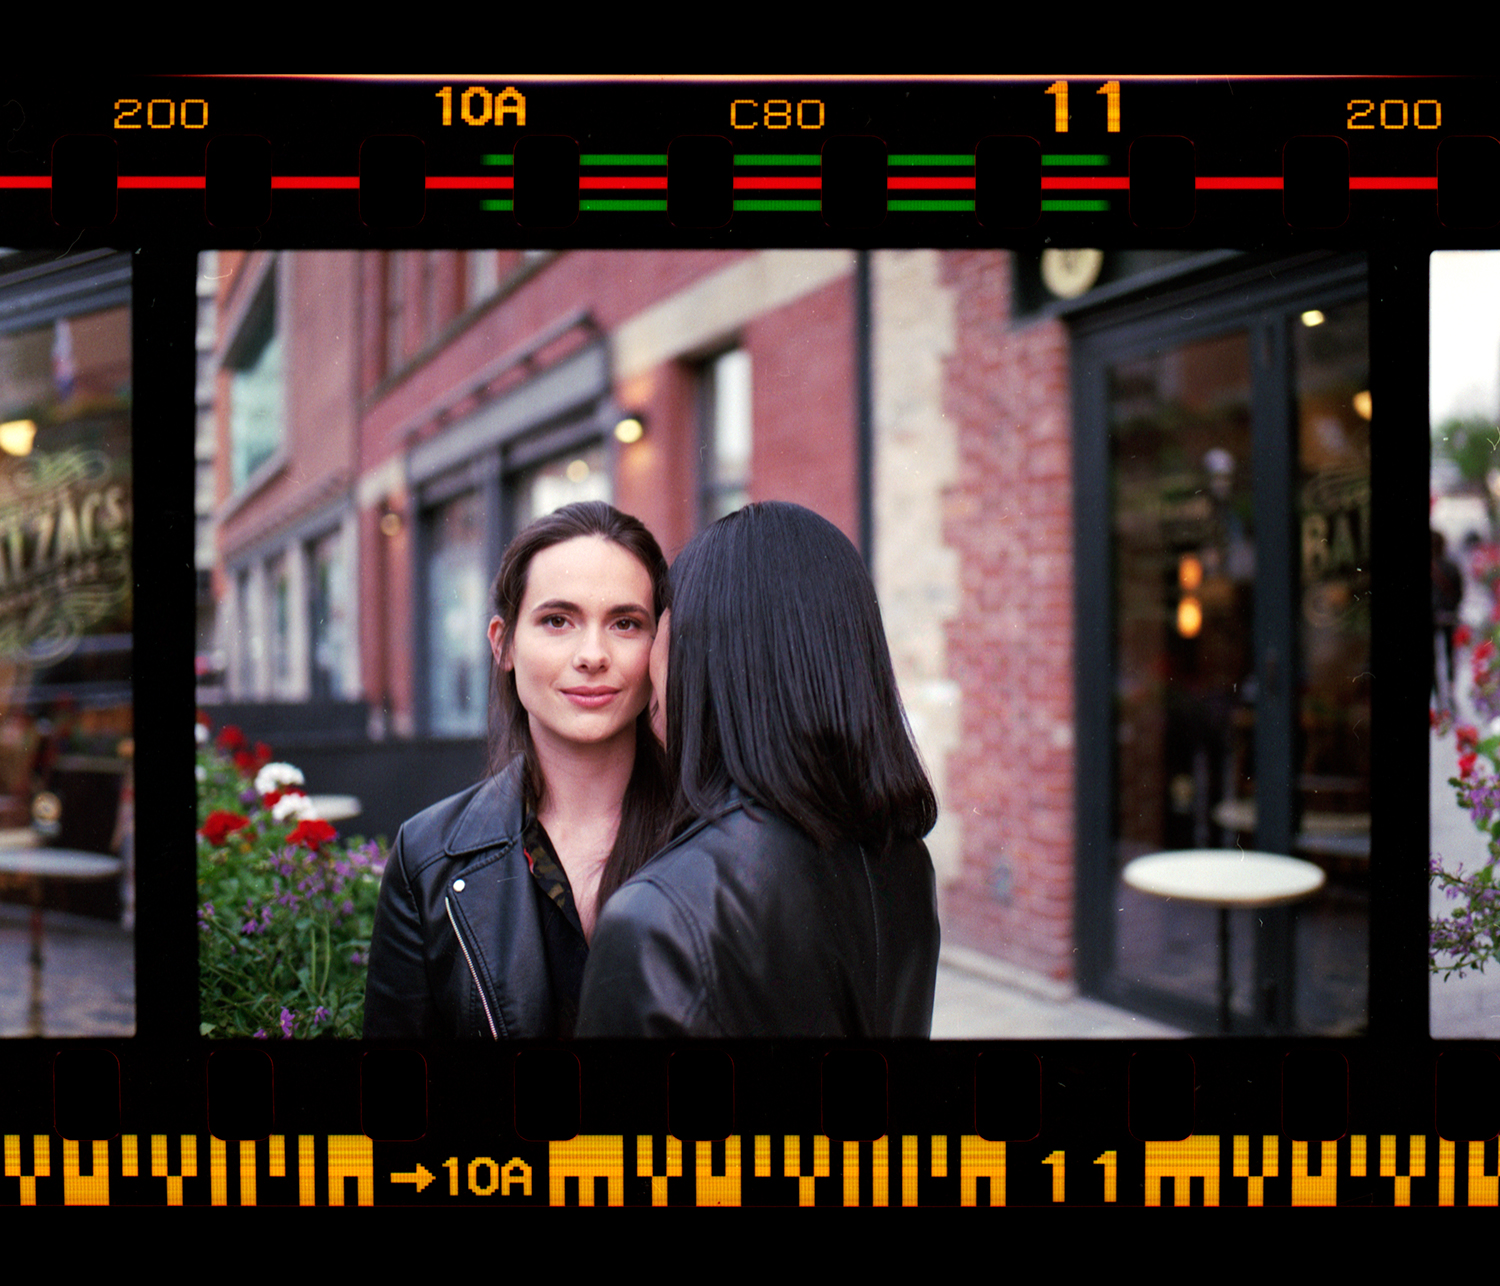 cotact-sheet-superia-200-steph-and-julie-02.JPG